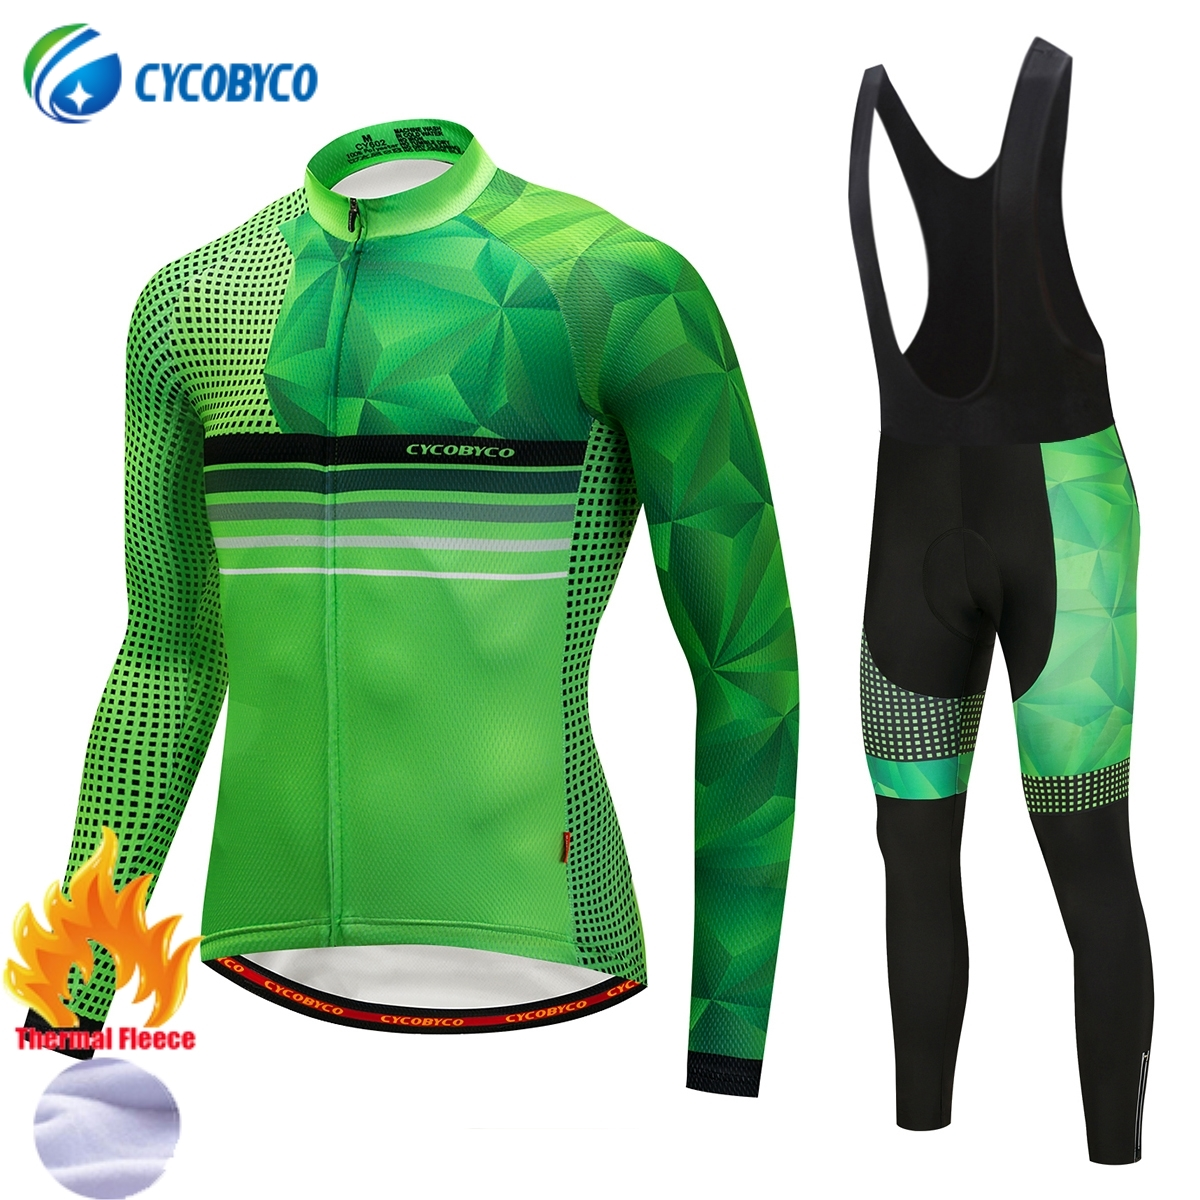 Cycobyco Winter Thermal Fleece Fluorescent Cycling Jersey Set Bike Maillot Ropa Ciclismo Long Sleeve and Bib Pant ClothingCycobyco Winter Thermal Fleece Fluorescent Cycling Jersey Set Bike Maillot Ropa Ciclismo Long Sleeve and Bib Pant Clothing